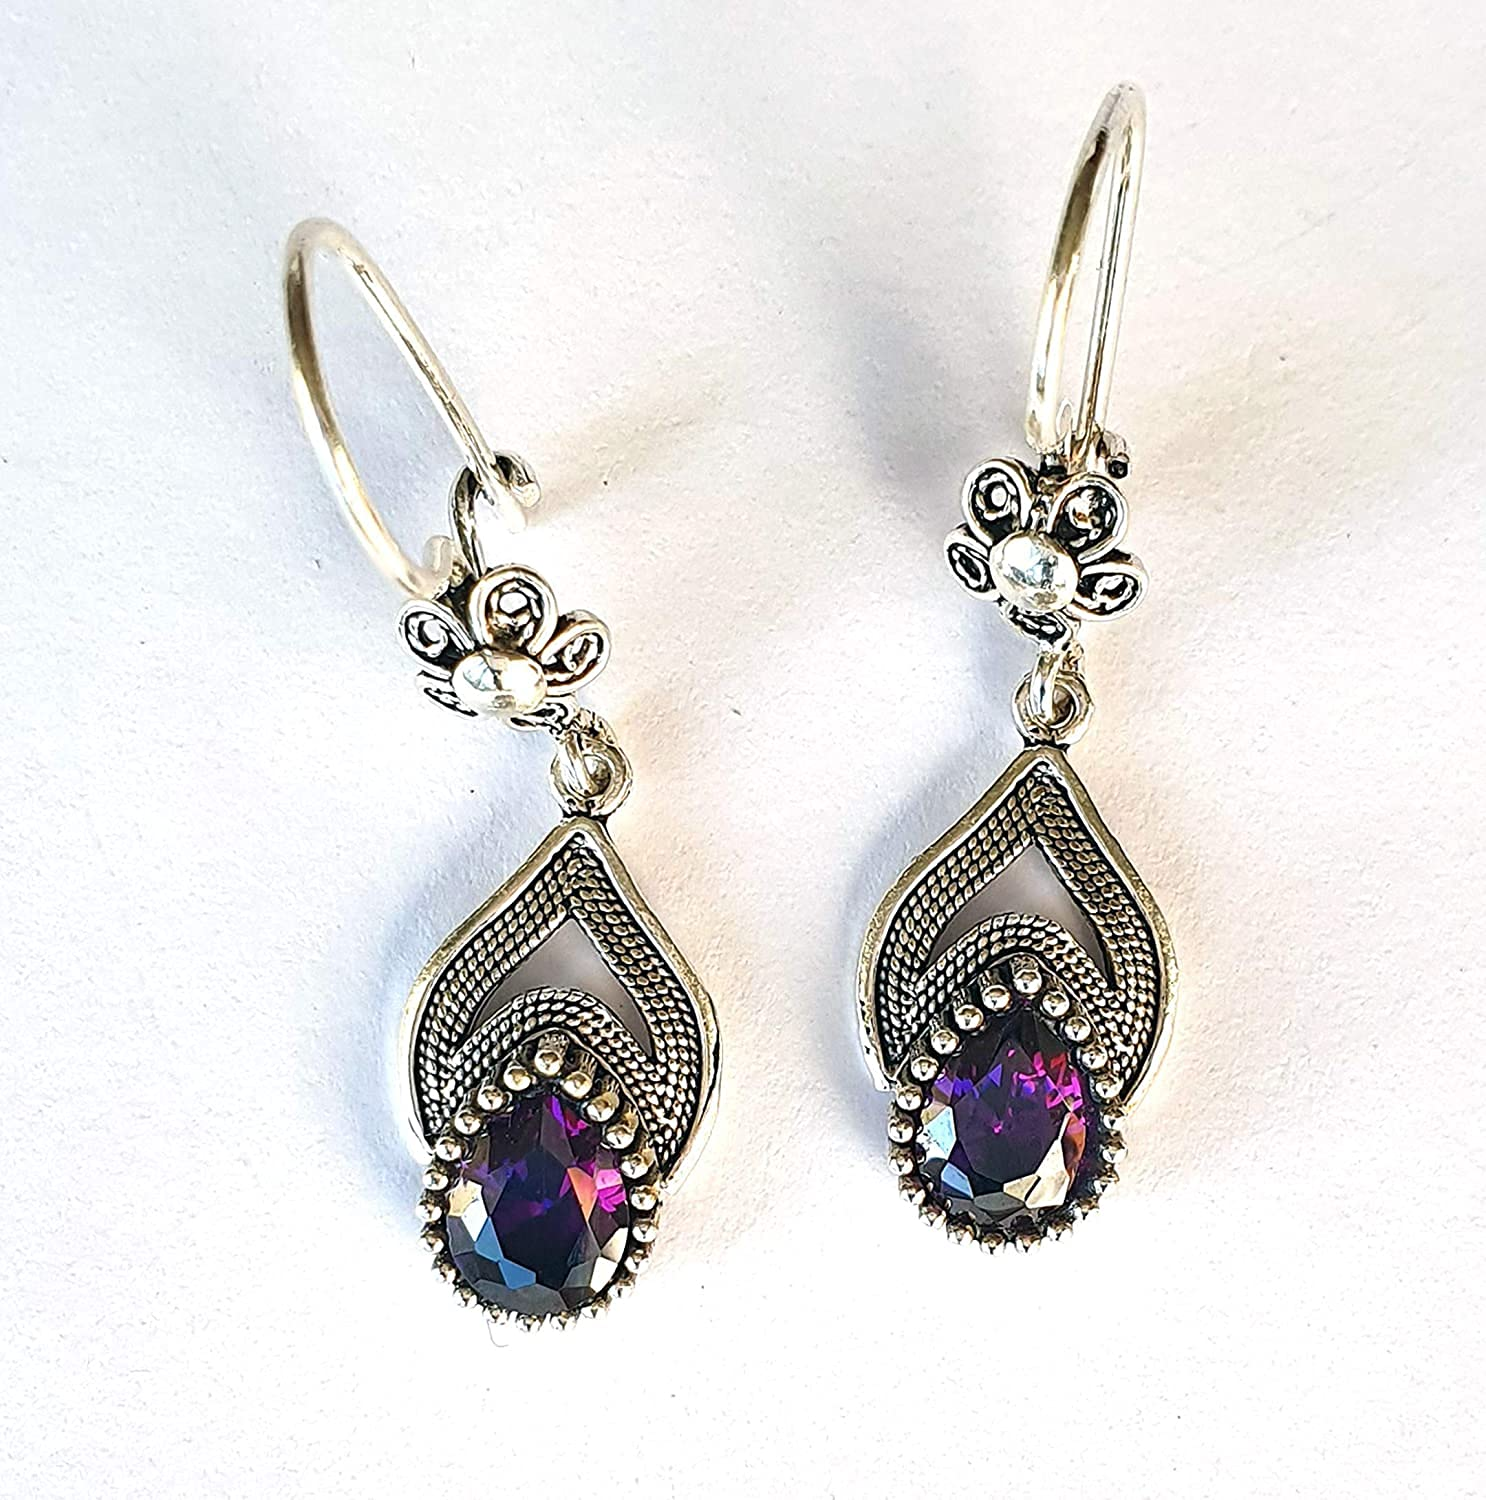 Dedication Handmade Sterling Silver Amethyst Free shipping anywhere in the nation Earrings February B Women for